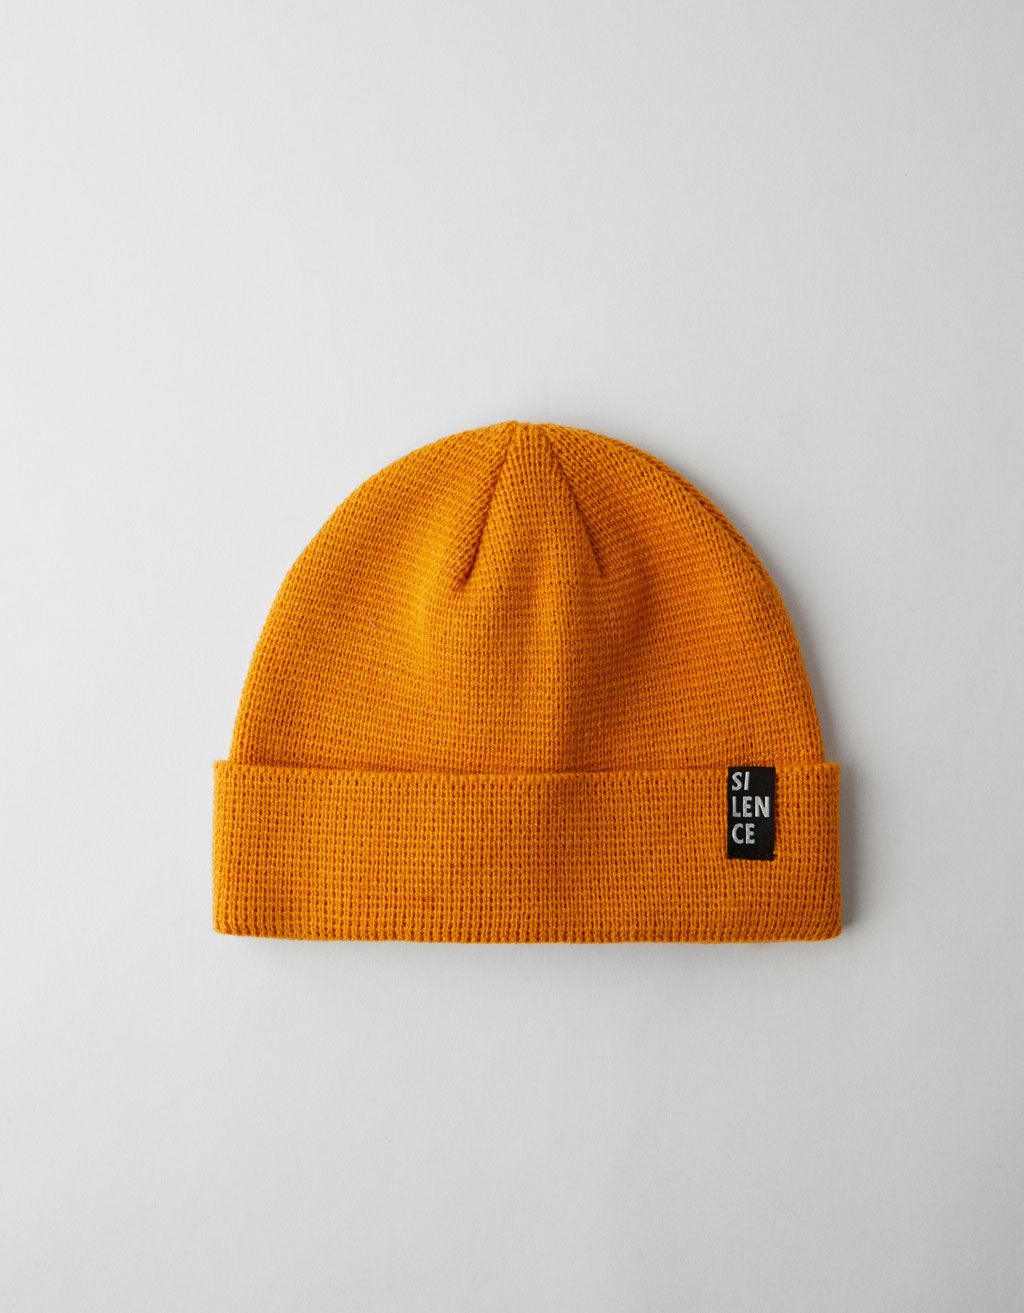 Beanie with label